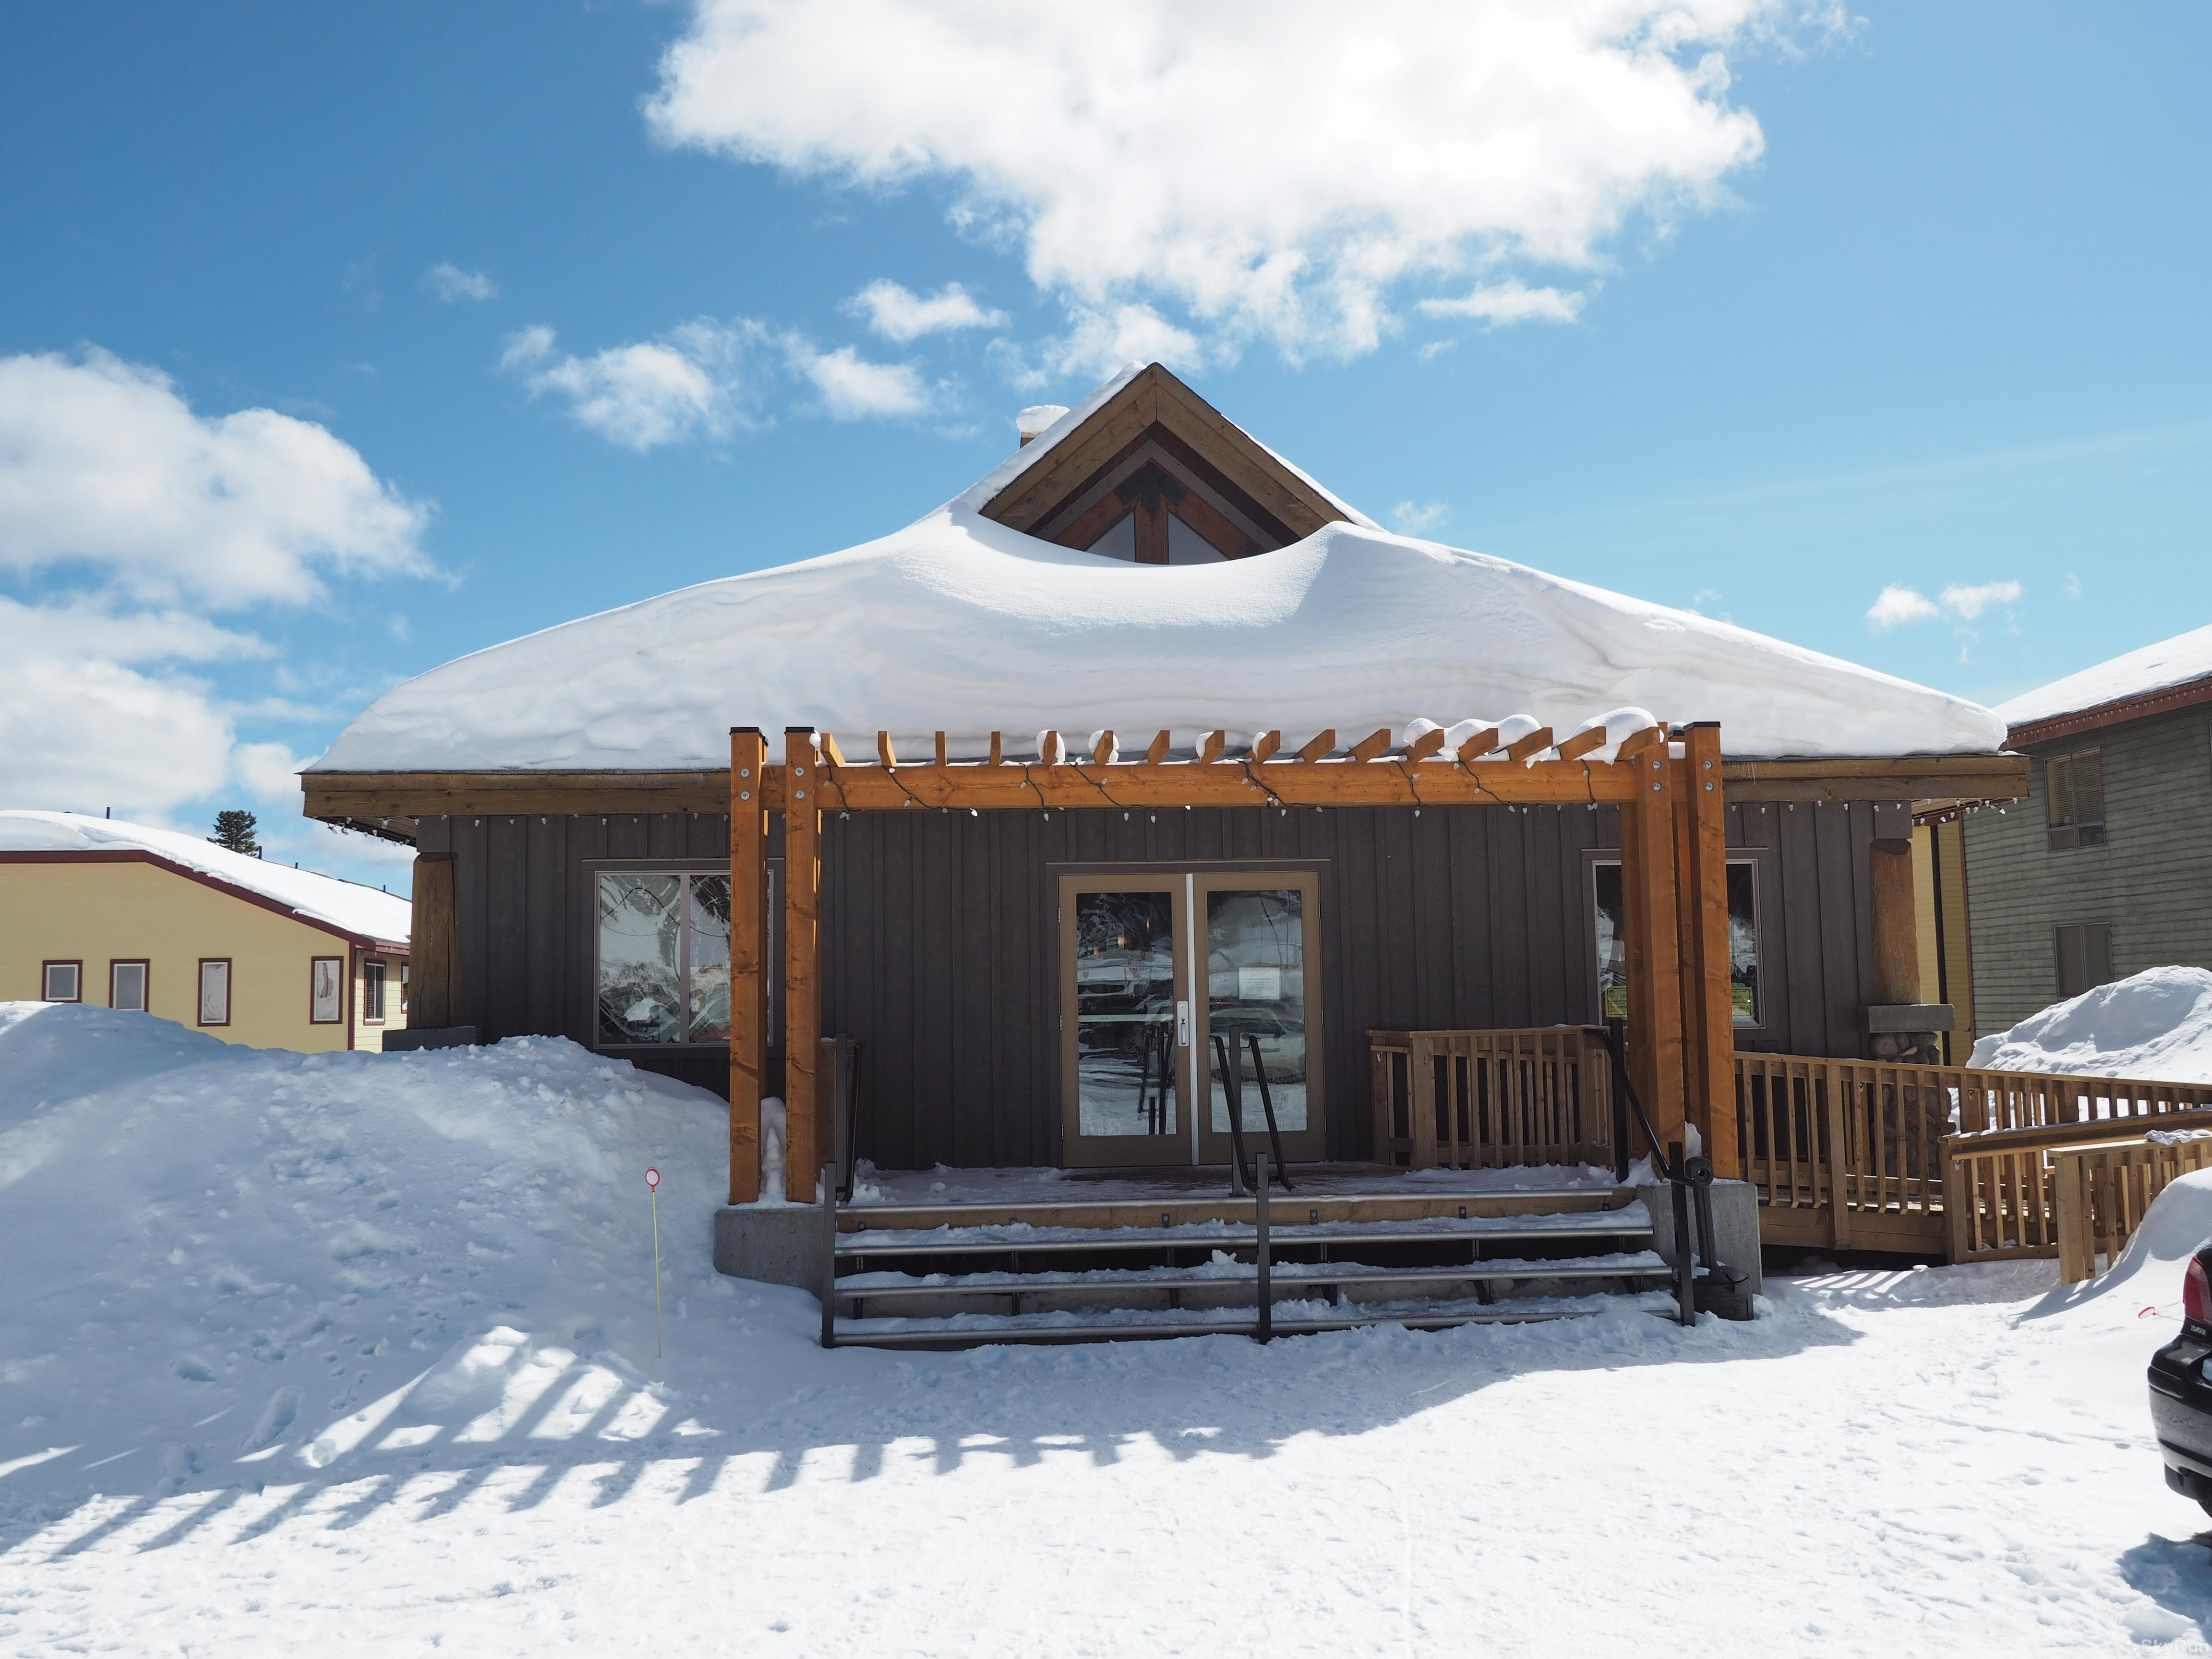 The Apex Mountain Lodge Apex Lodge